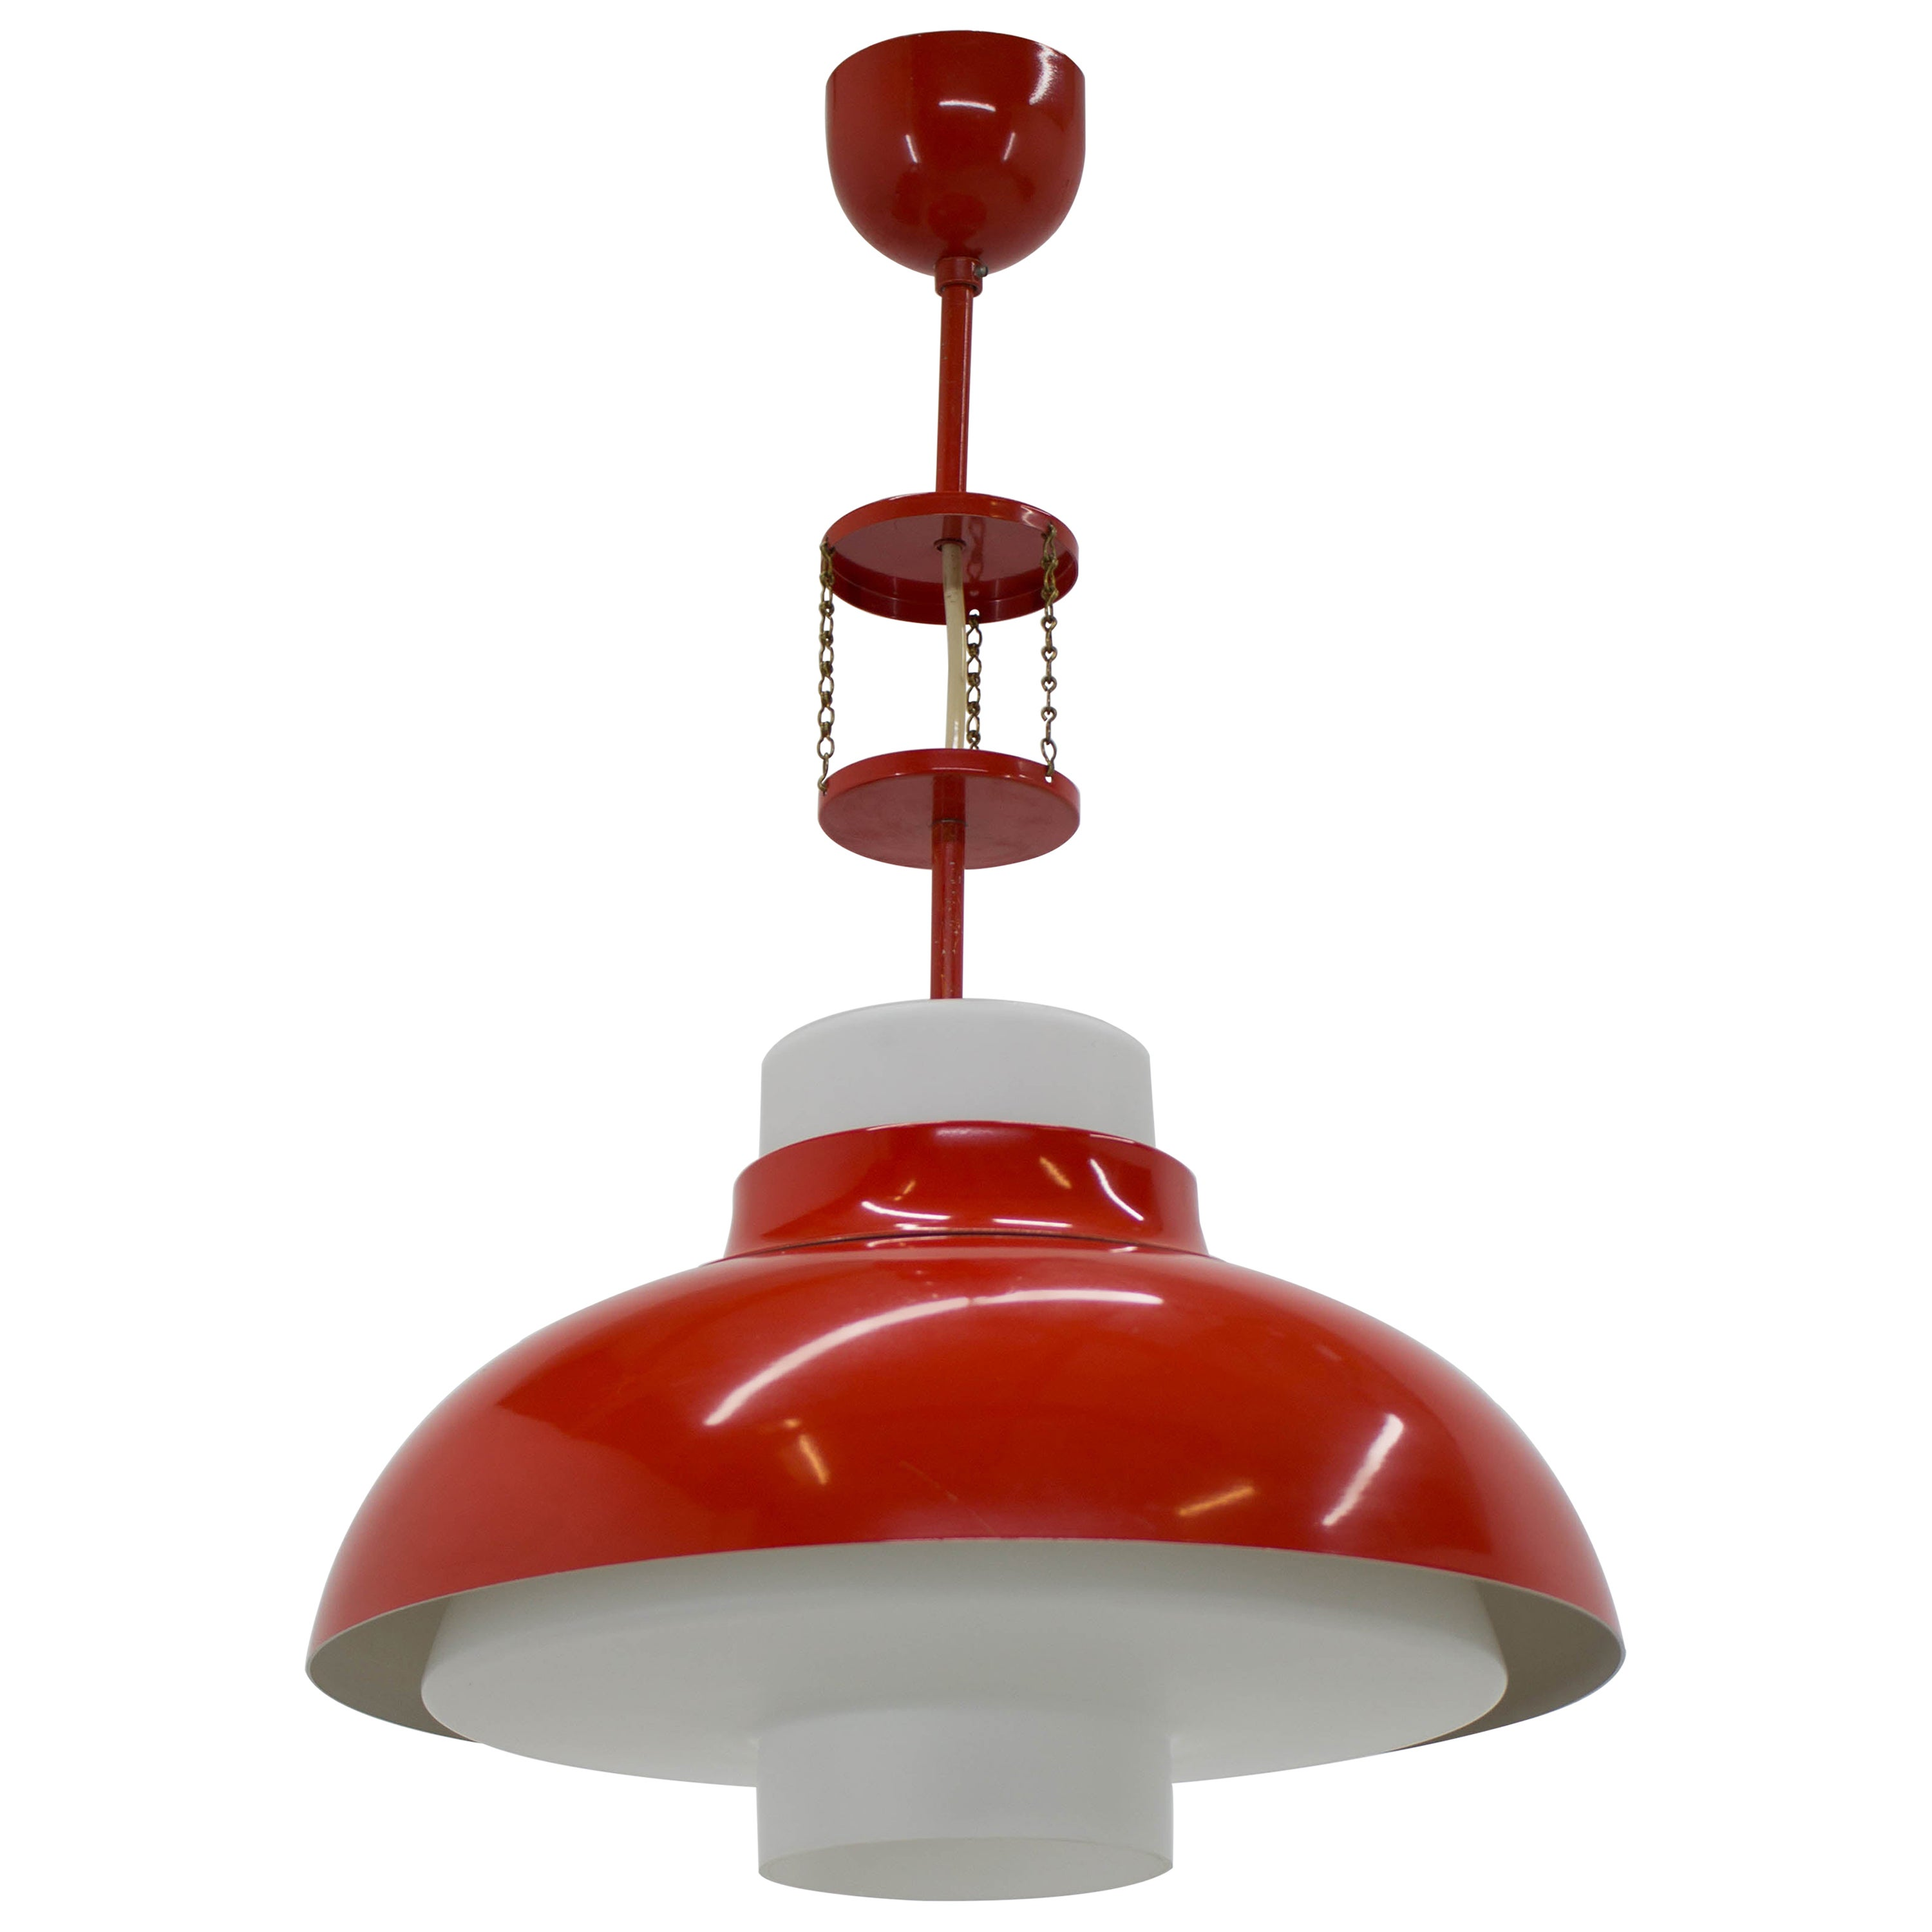 Midcentury Chandelier by Napako, 1970s